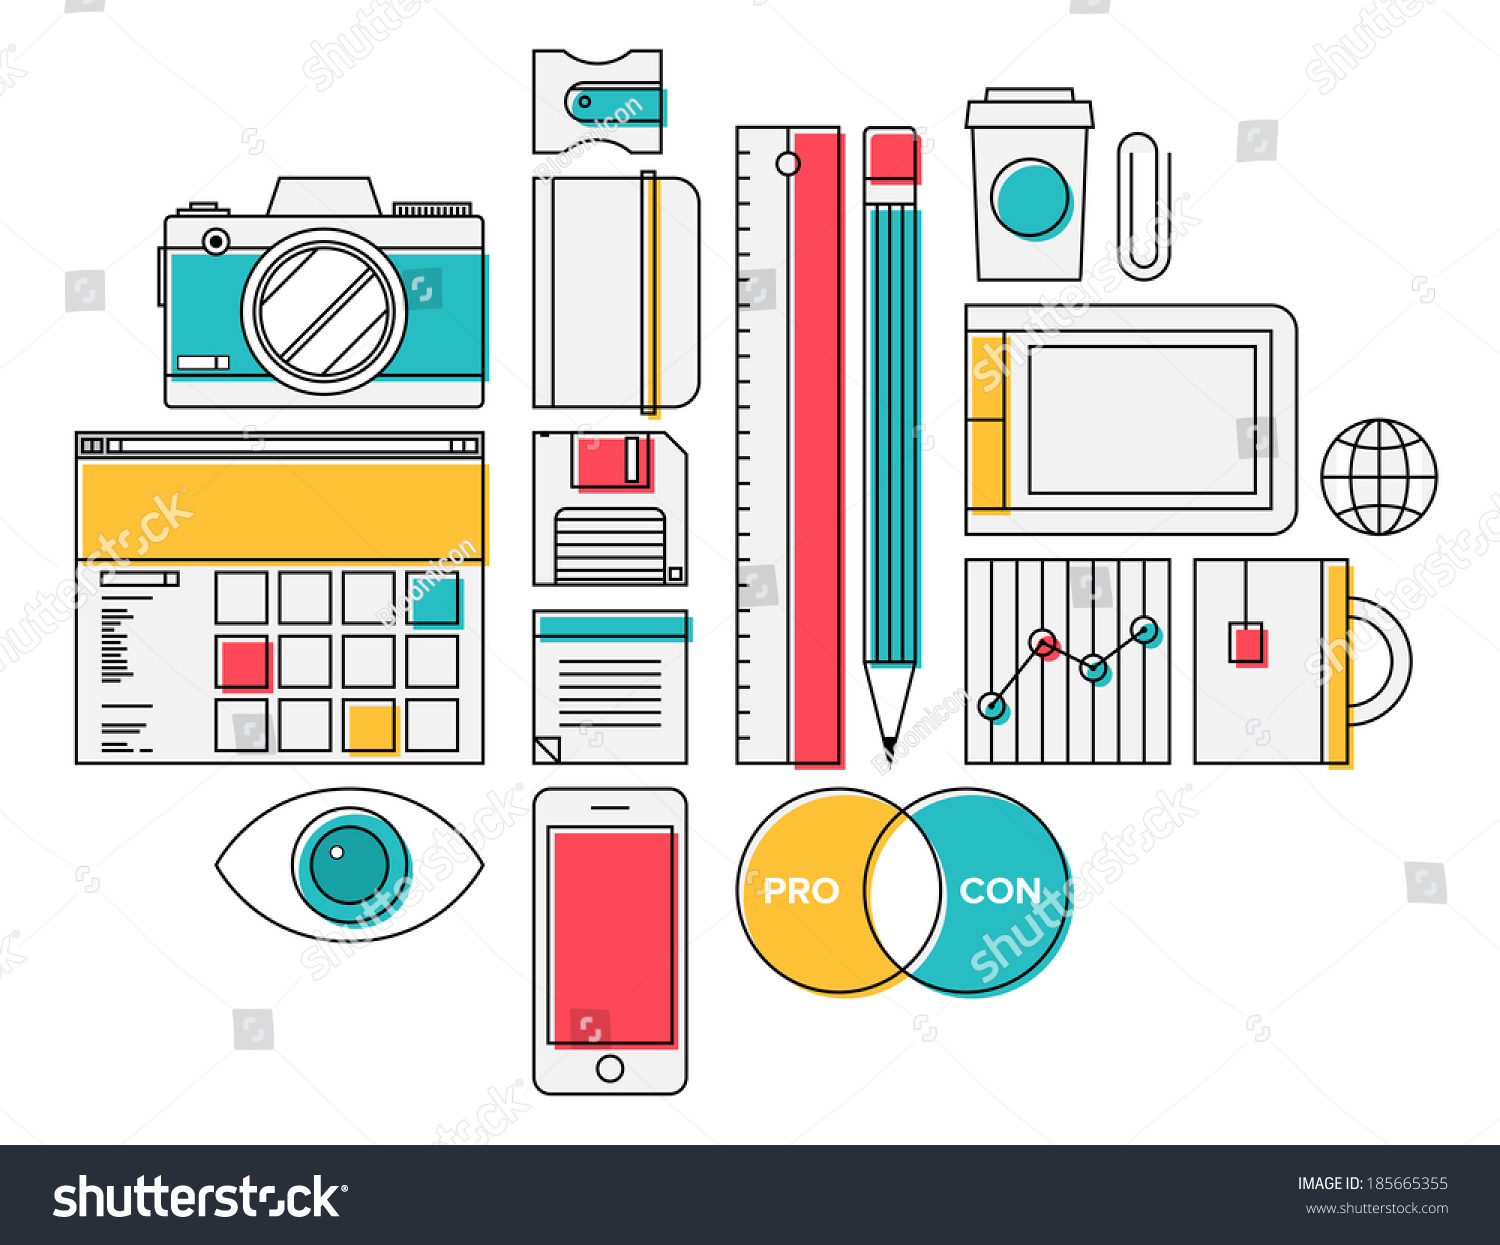 Trendy Office Supplies Design Thin Line Icons Modern Style Illustration Vector Set Of And Decor